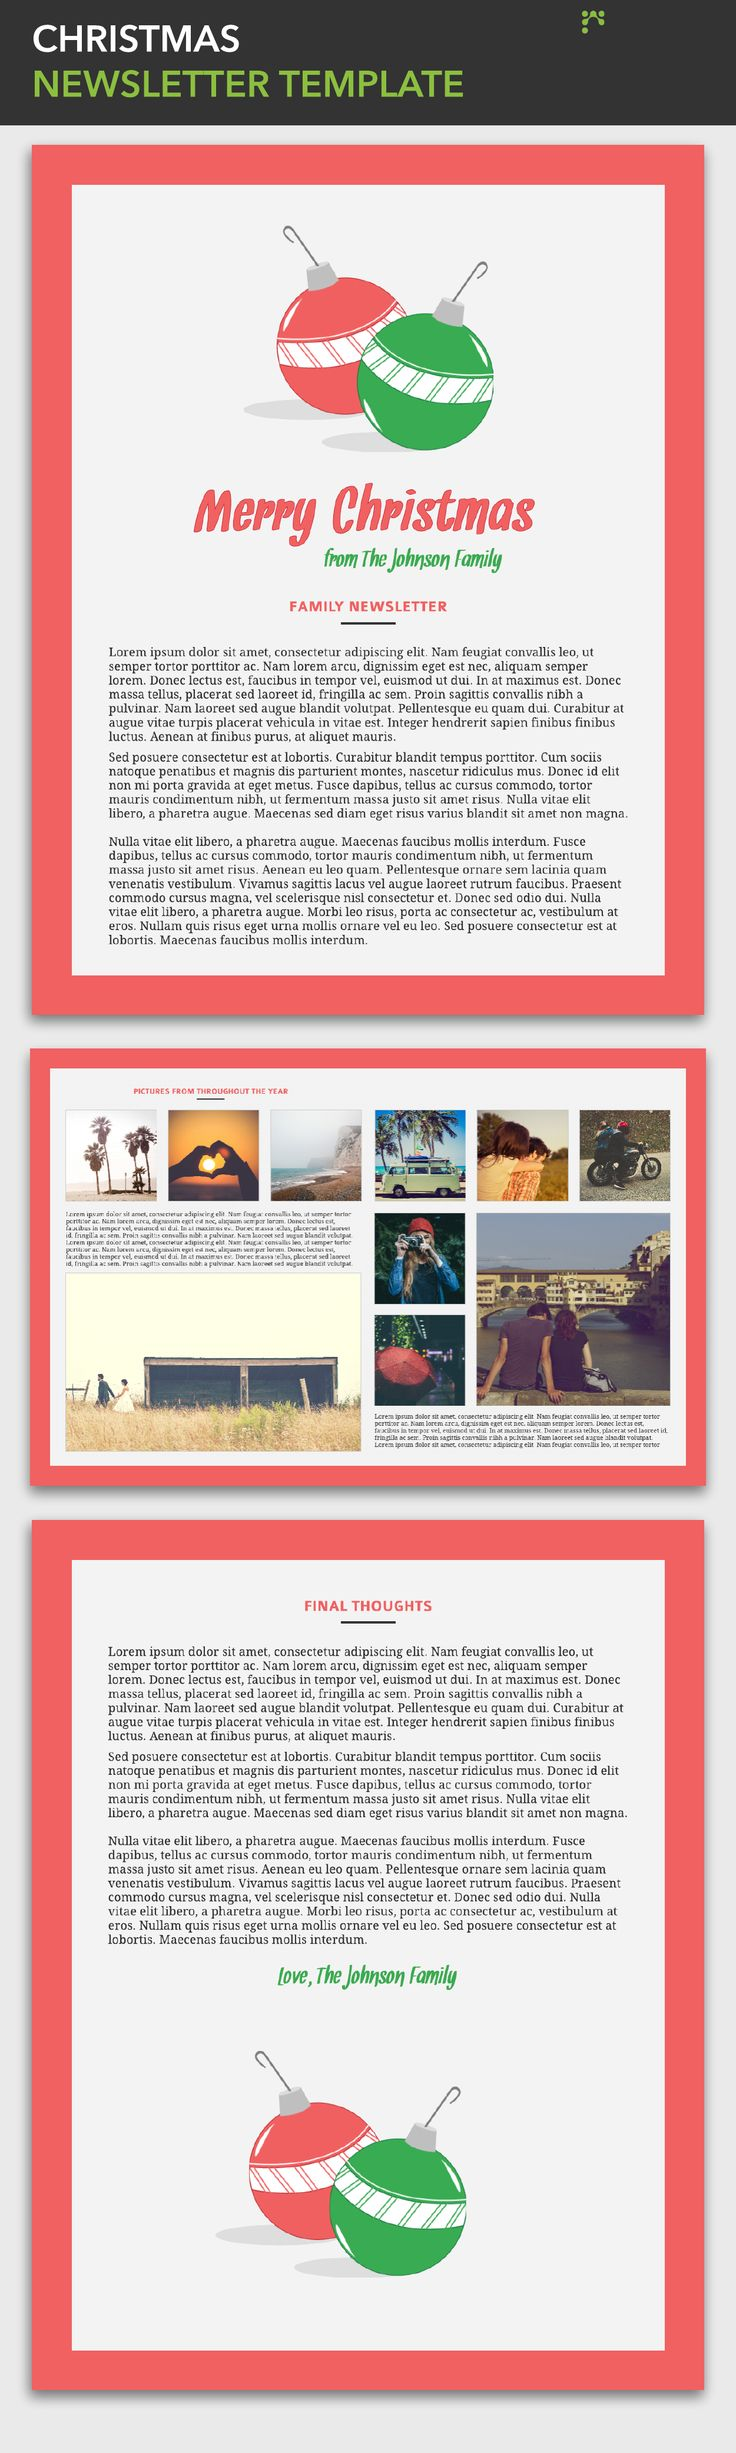 14 best images about Free Magazine & Newsletter Templates on Pinterest